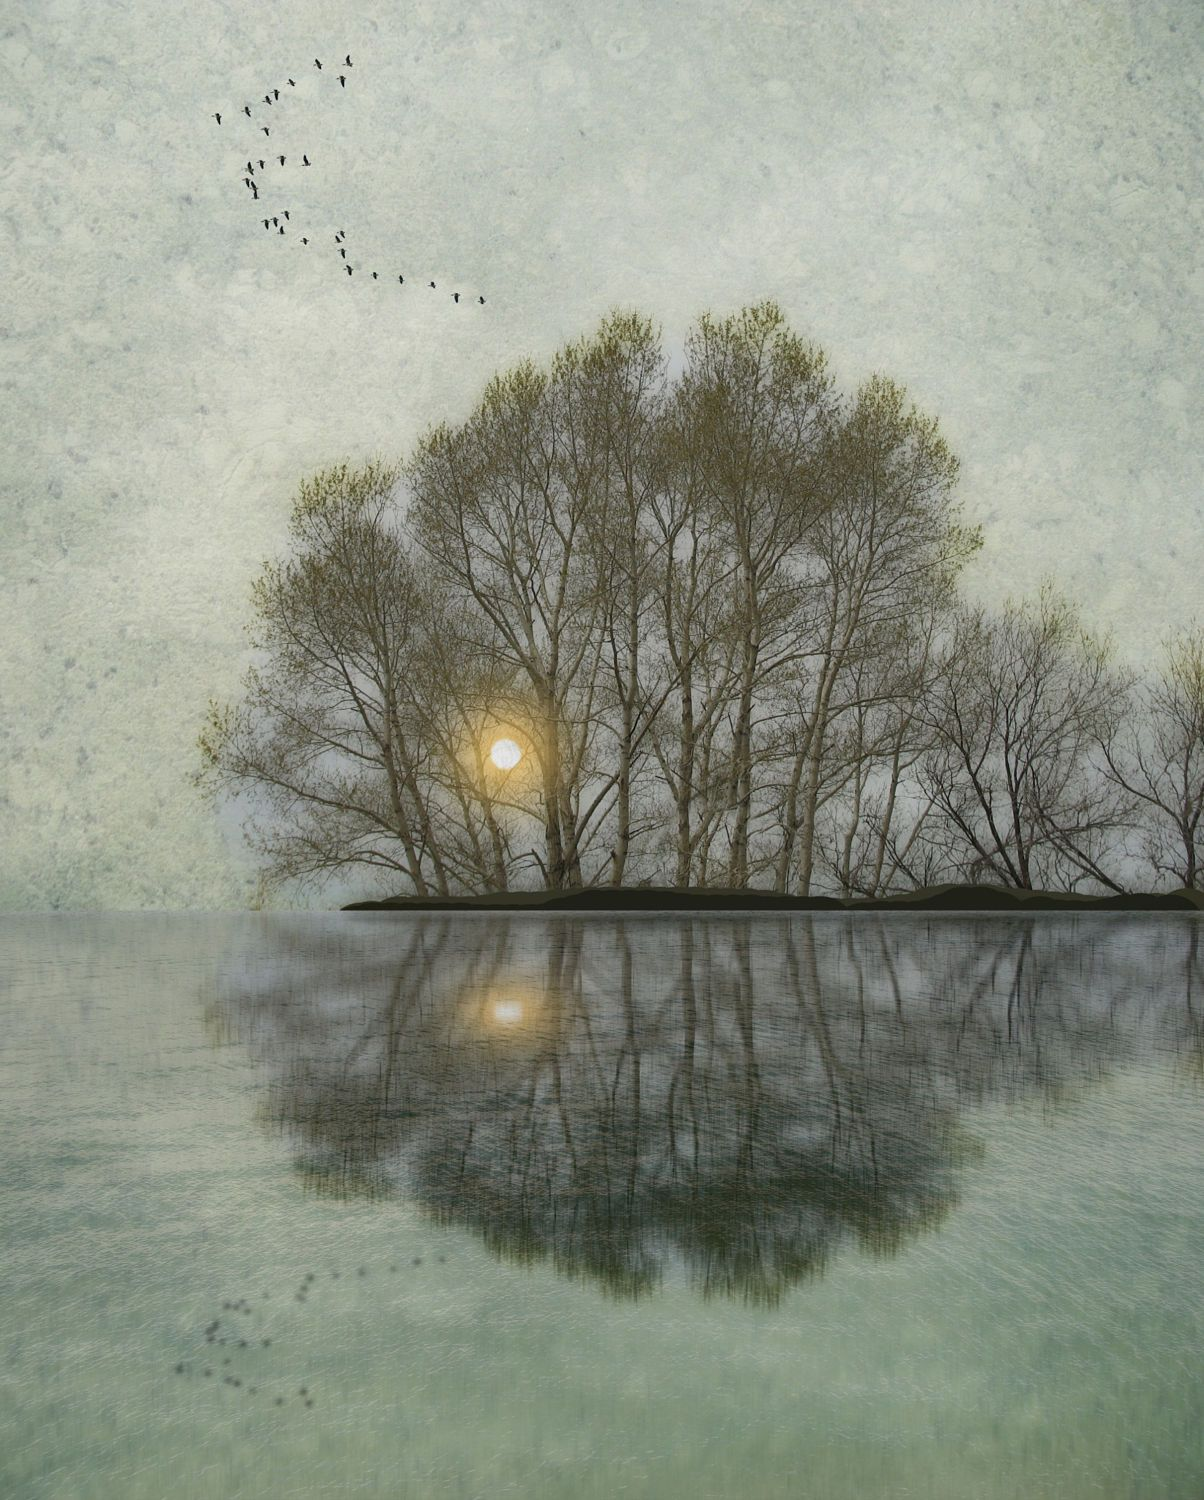 2122 by peter holme iii on 500px